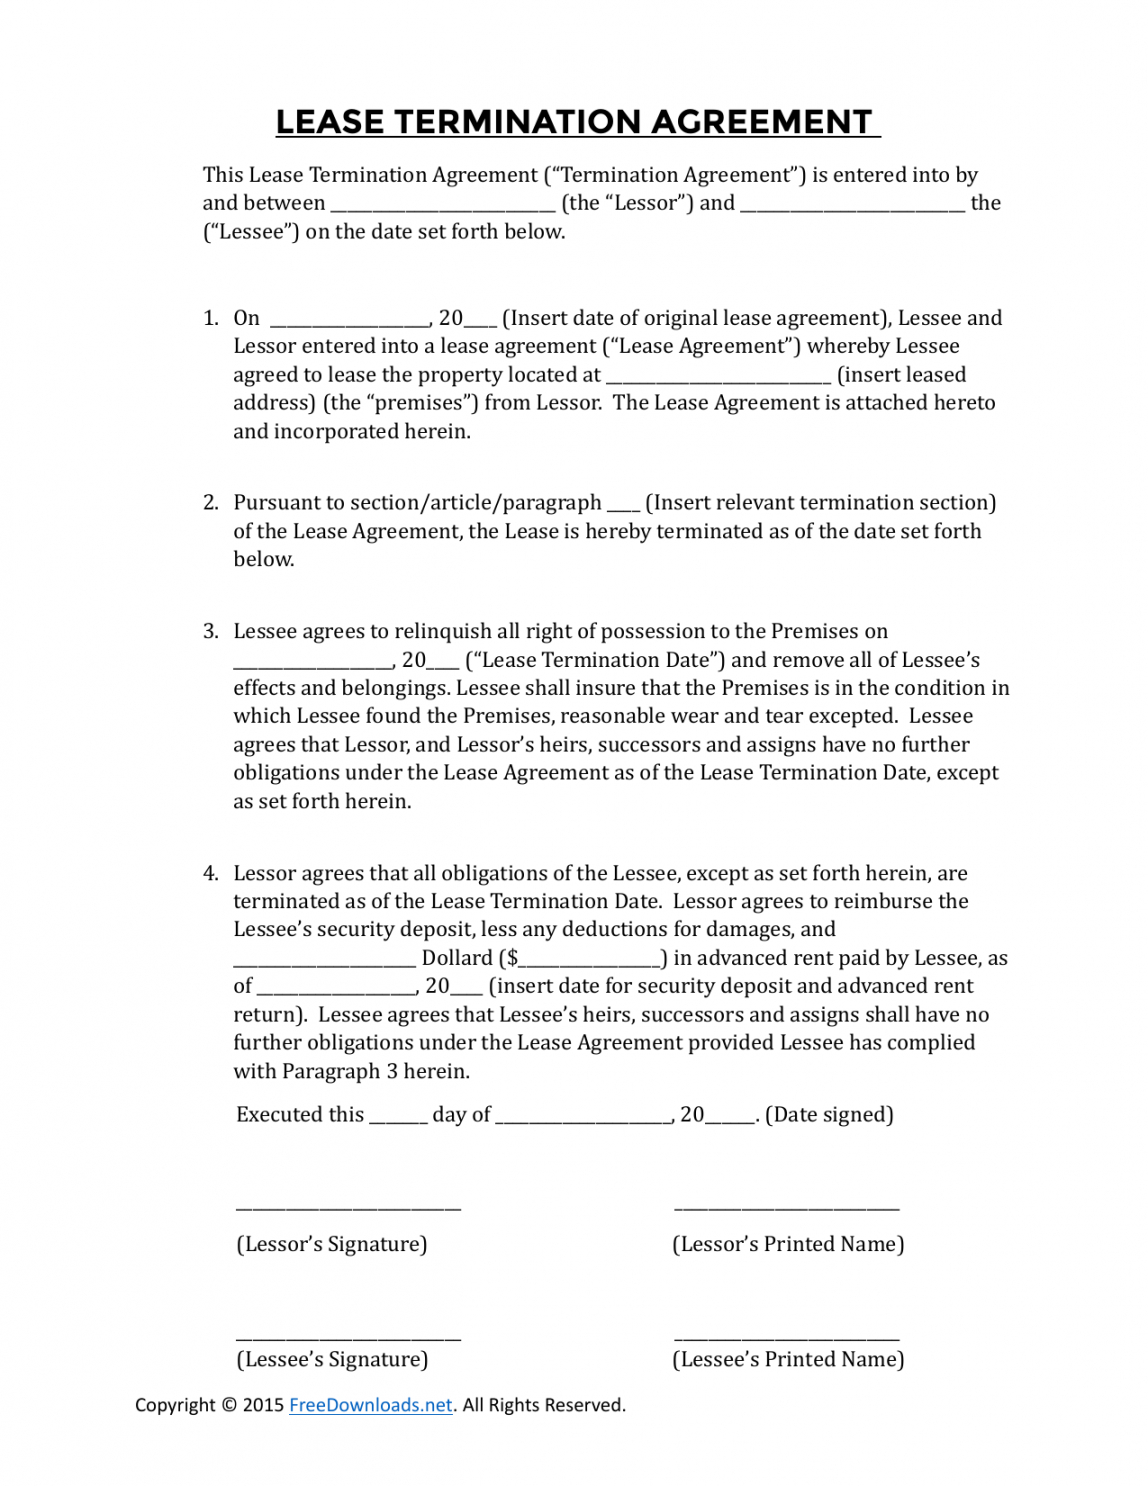 Free Download Early Lease Termination Agreement Pdf Word Lease Termination Agreement Template Doc